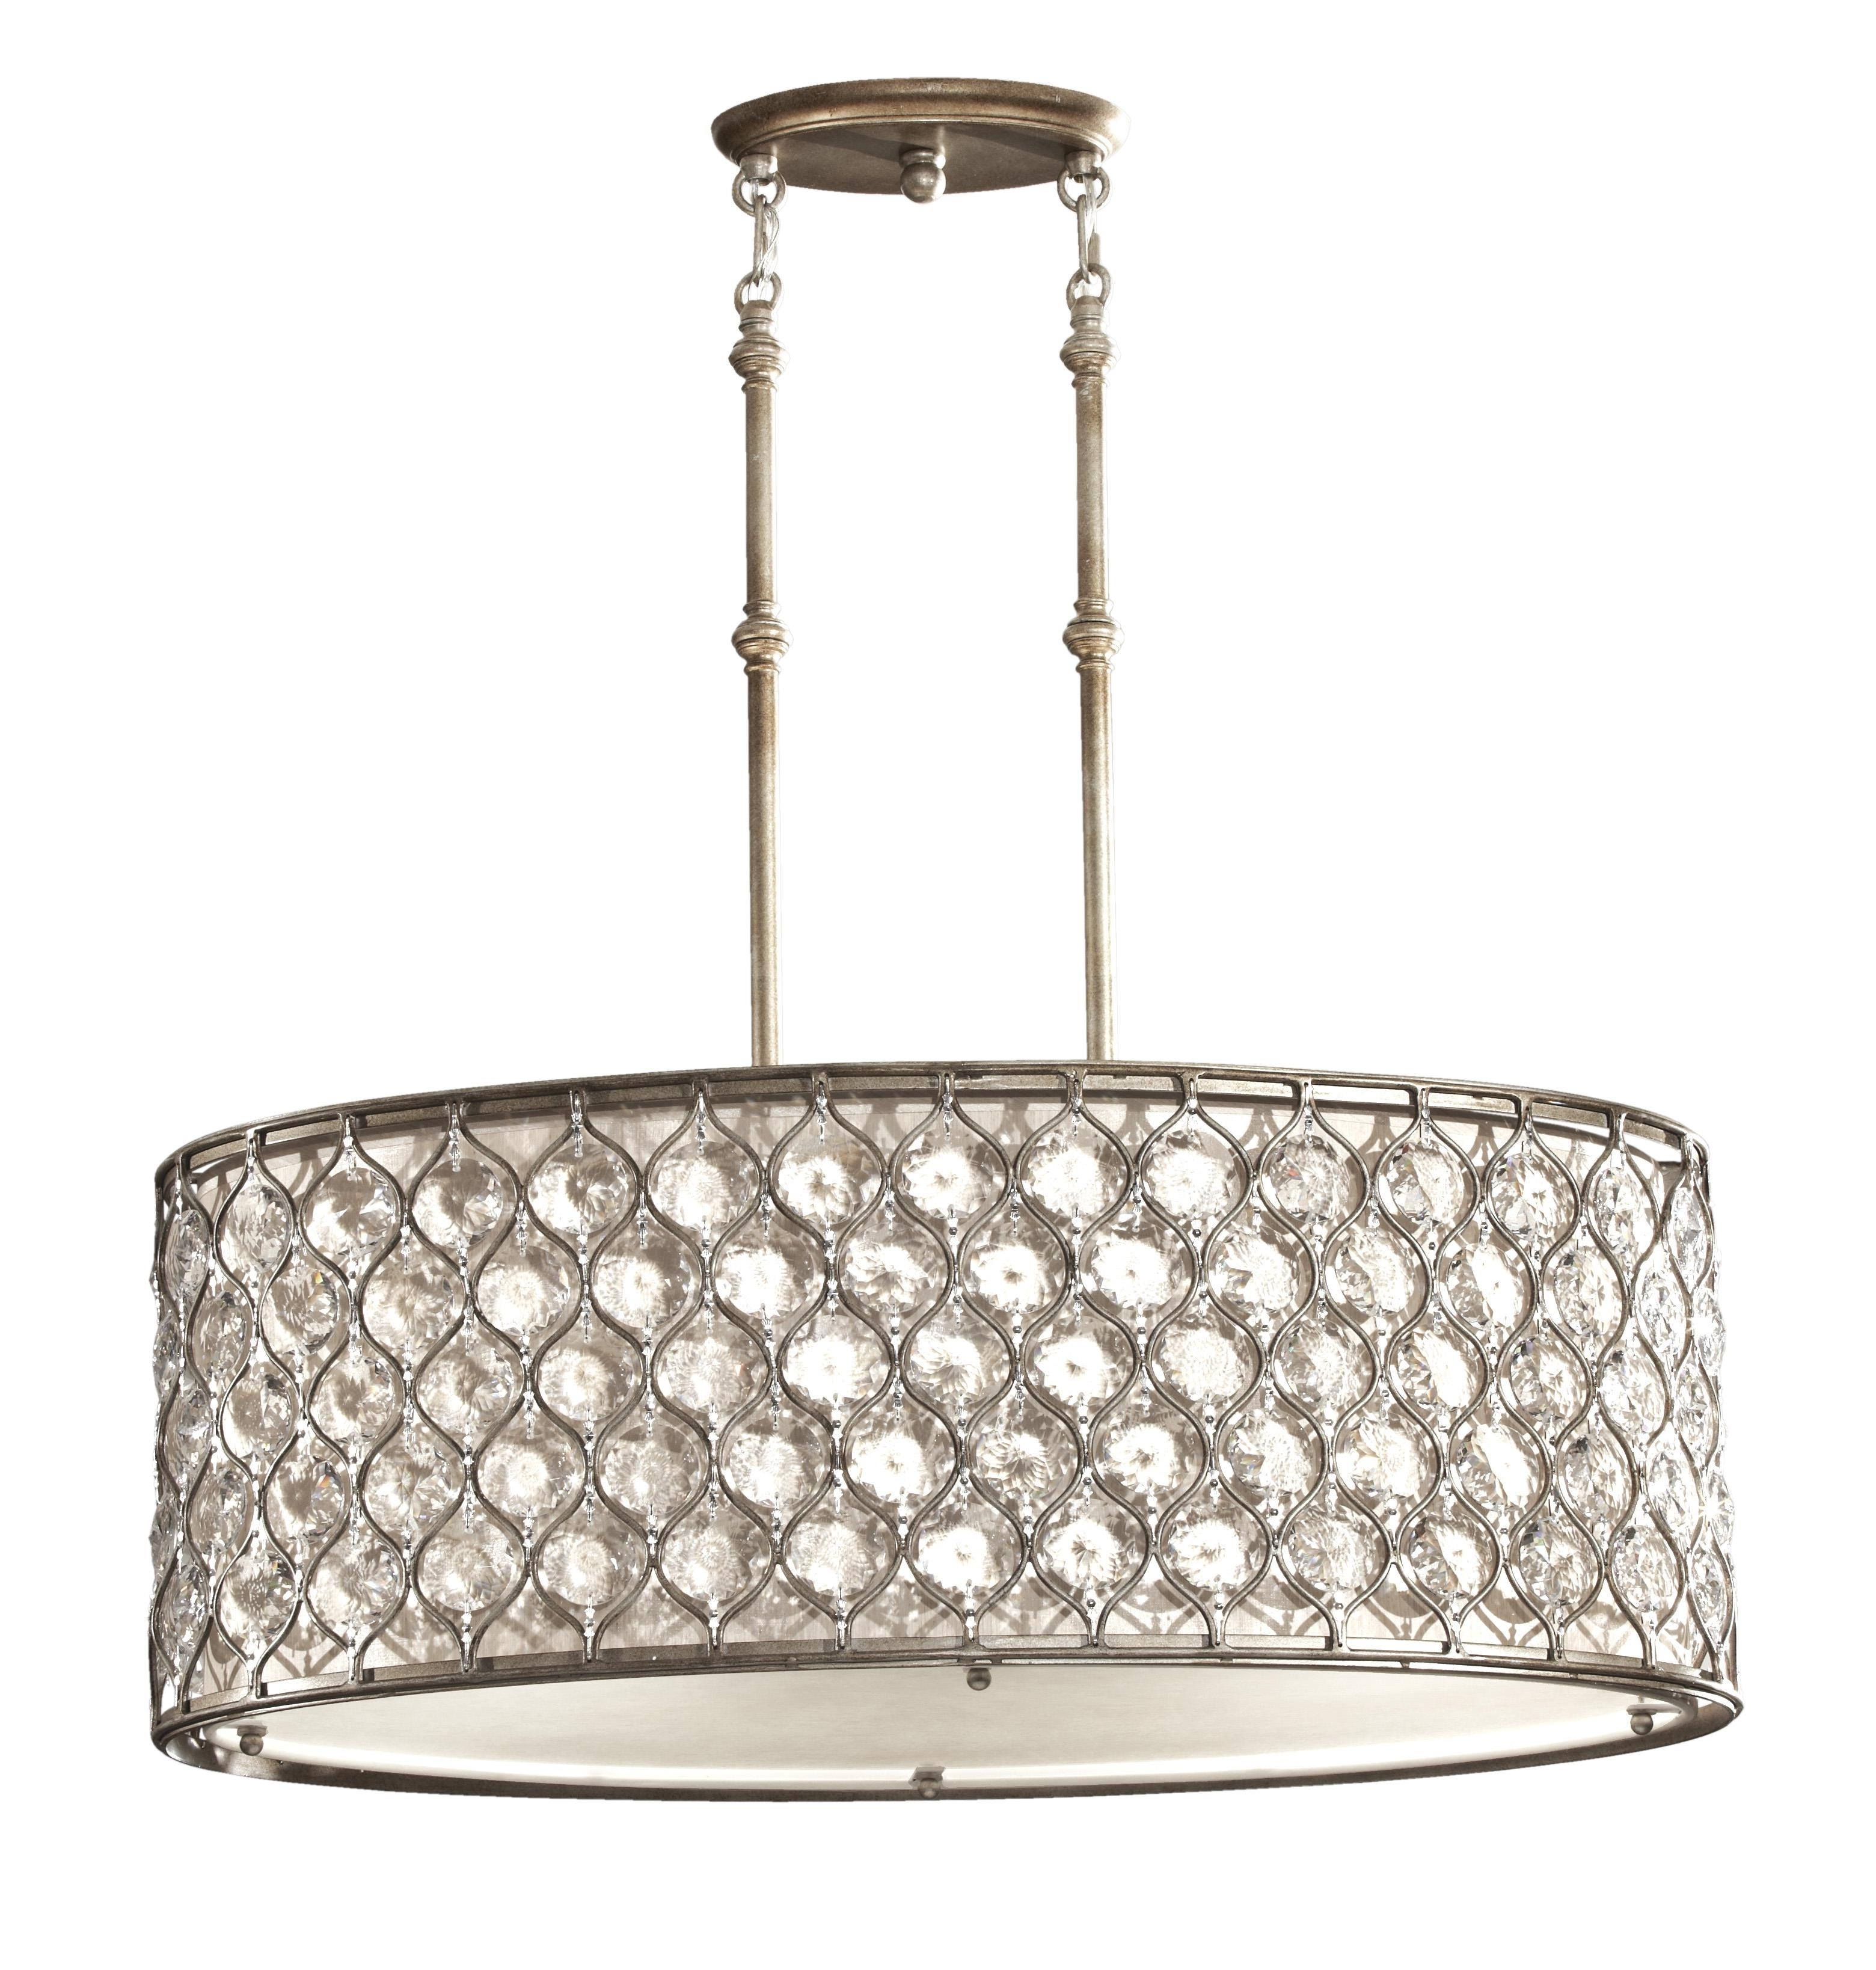 Preferred Feiss Chandeliers Pertaining To Feiss F2569/3bus Shipped Direct (View 17 of 20)